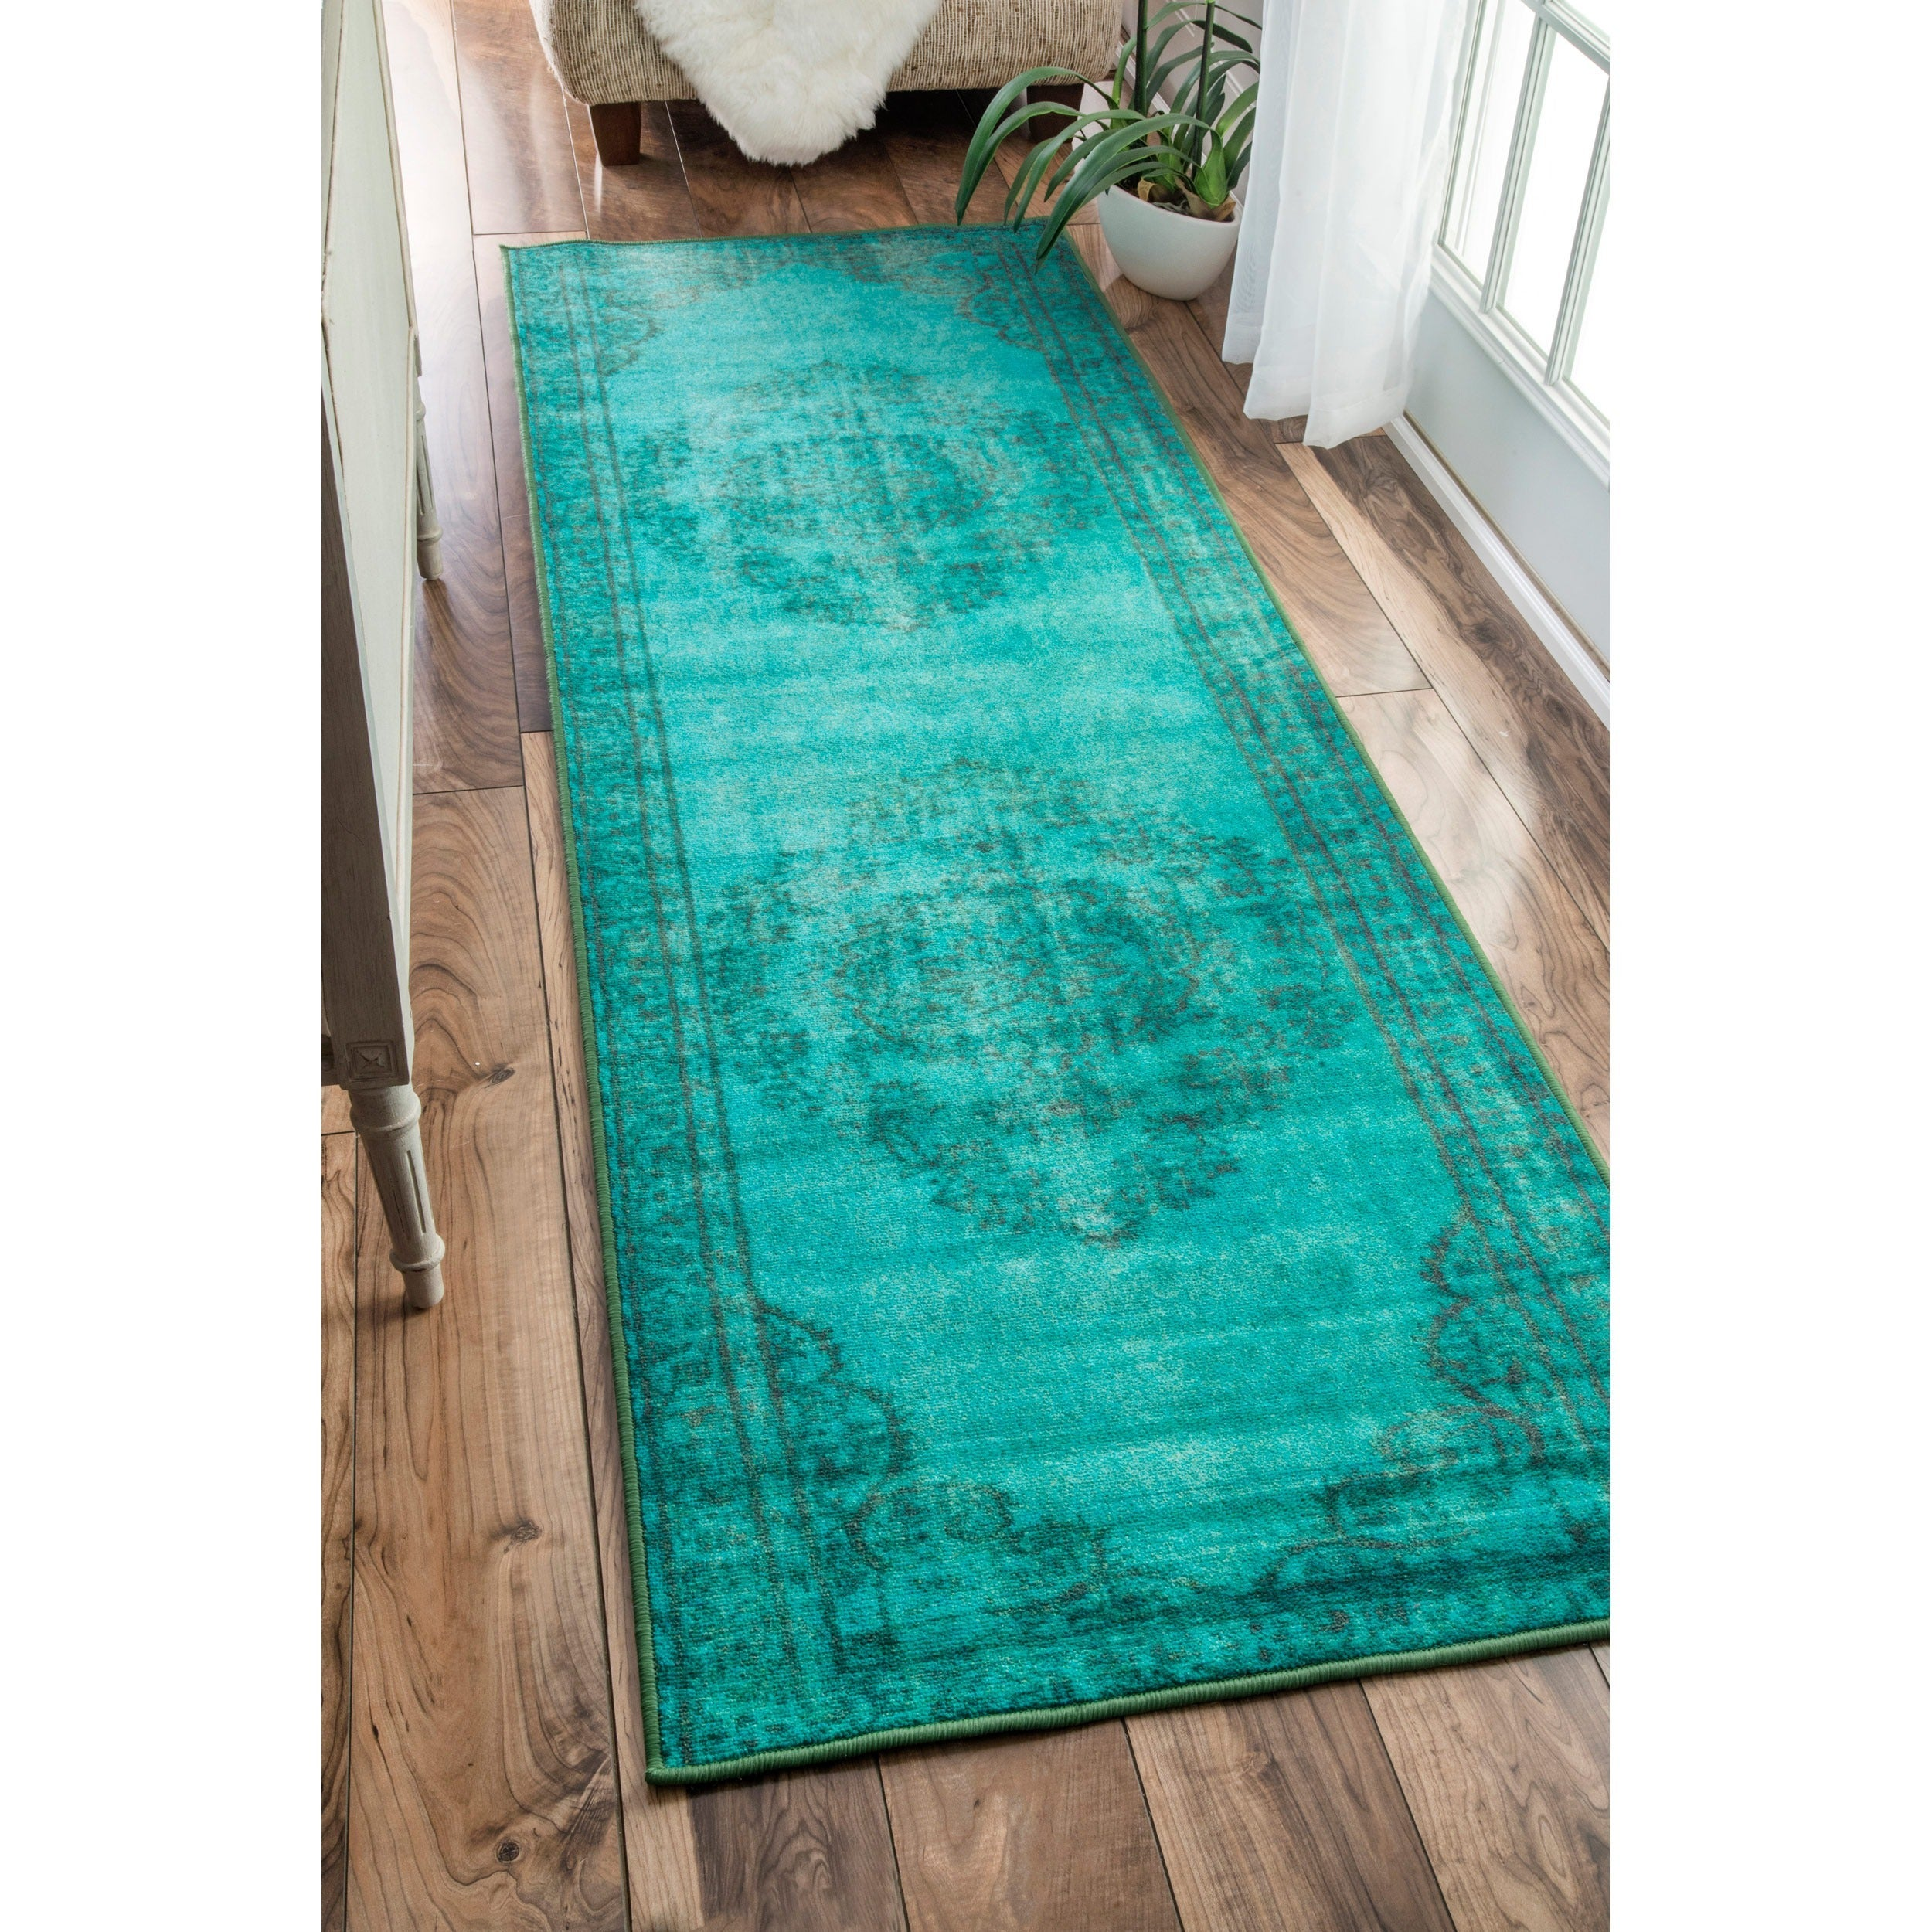 Nuloom Vintage Inspired Turquoise Overdyed Rug: Shop NuLOOM Vintage Inspired Fancy Overdyed Turquoise